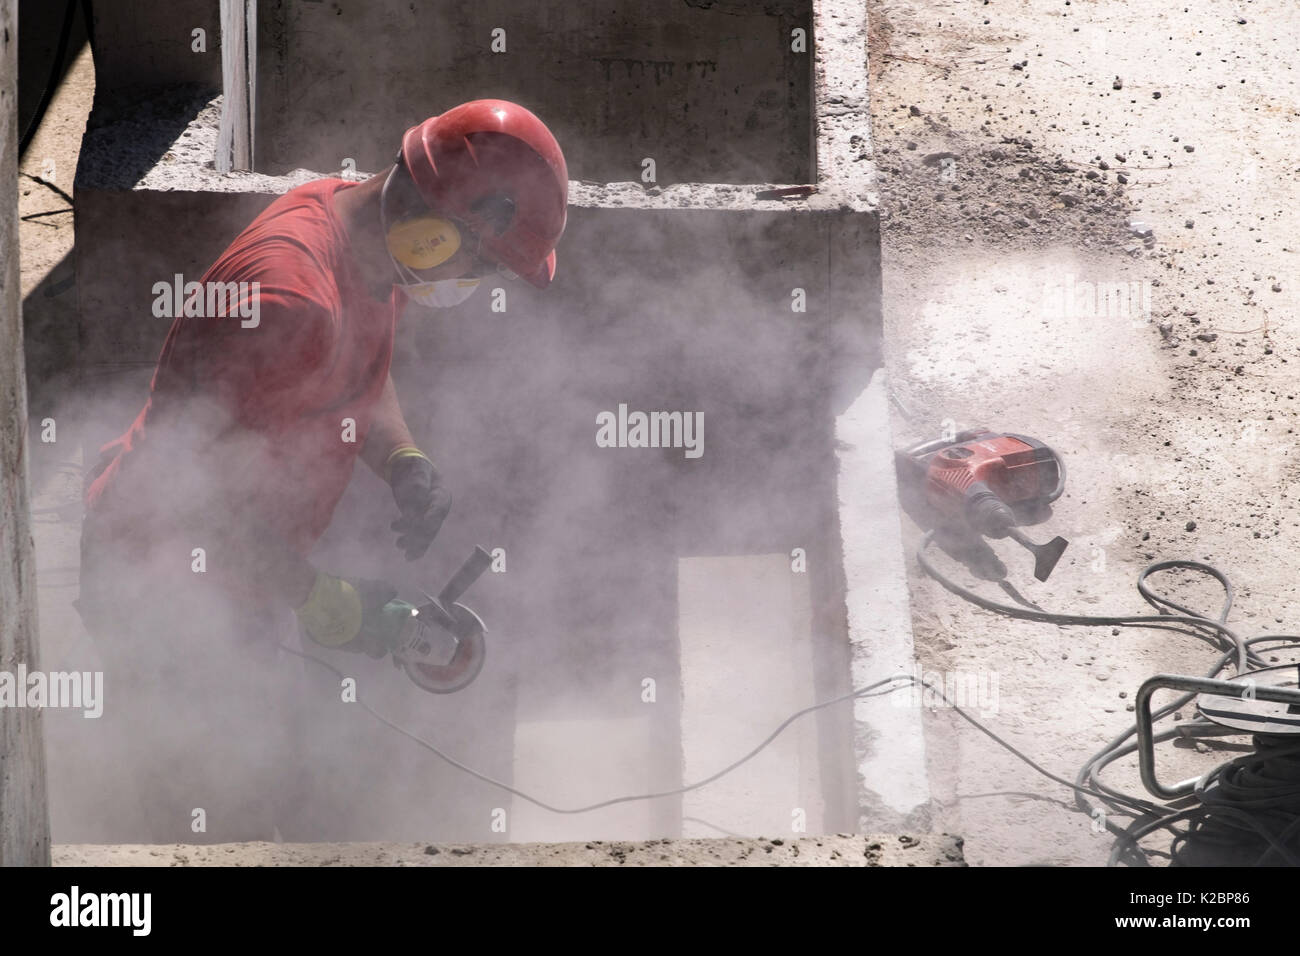 Construction worker wearing safety helmet and headphones uses a sander to sand the steps of a swimming pool - Stock Image